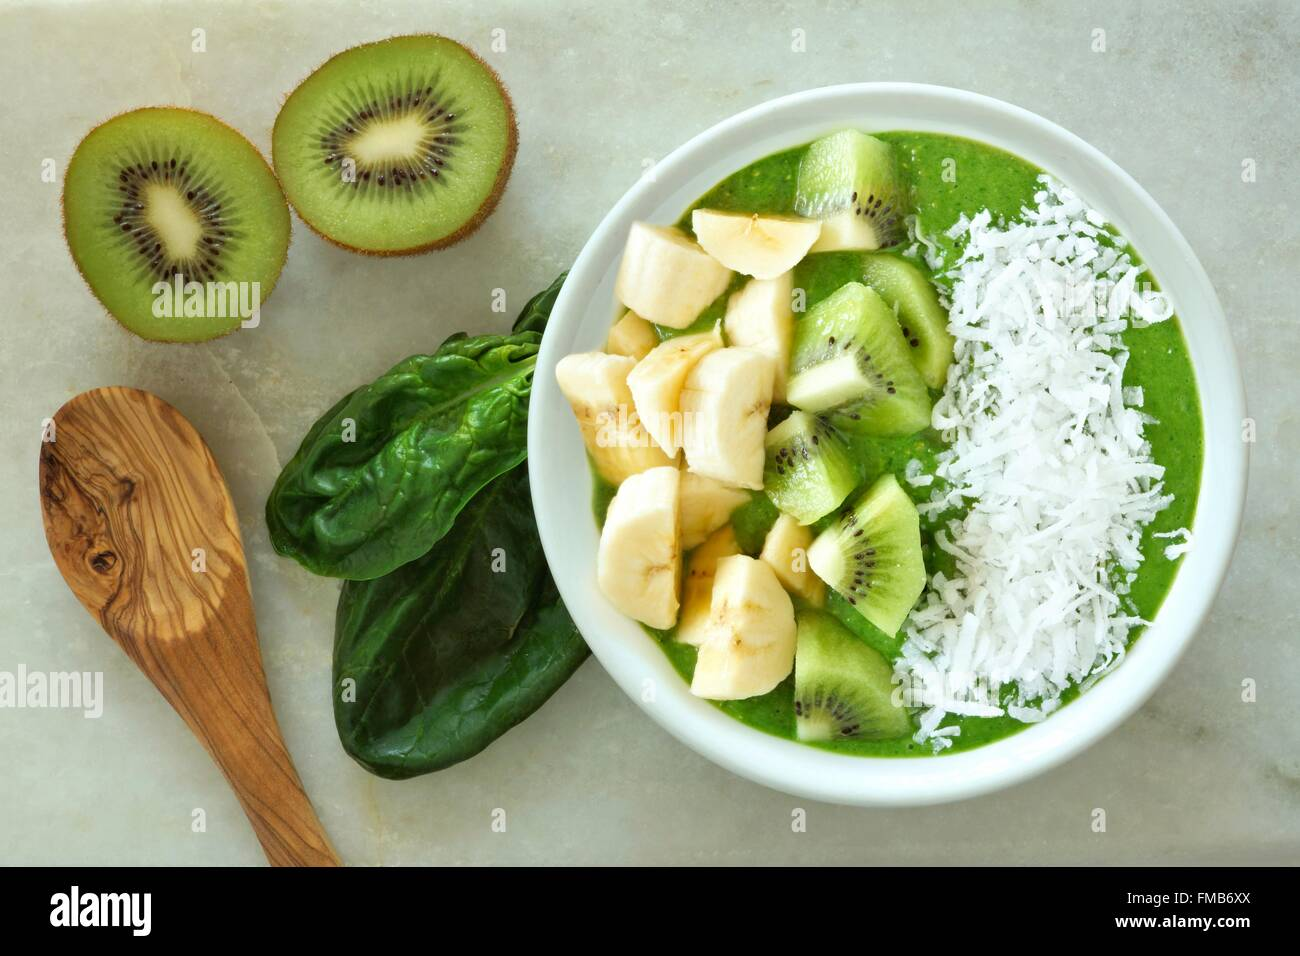 Green smoothie bowl with spinach, bananas, kiwi fruit and coconut with spoon on a white marble background - Stock Image